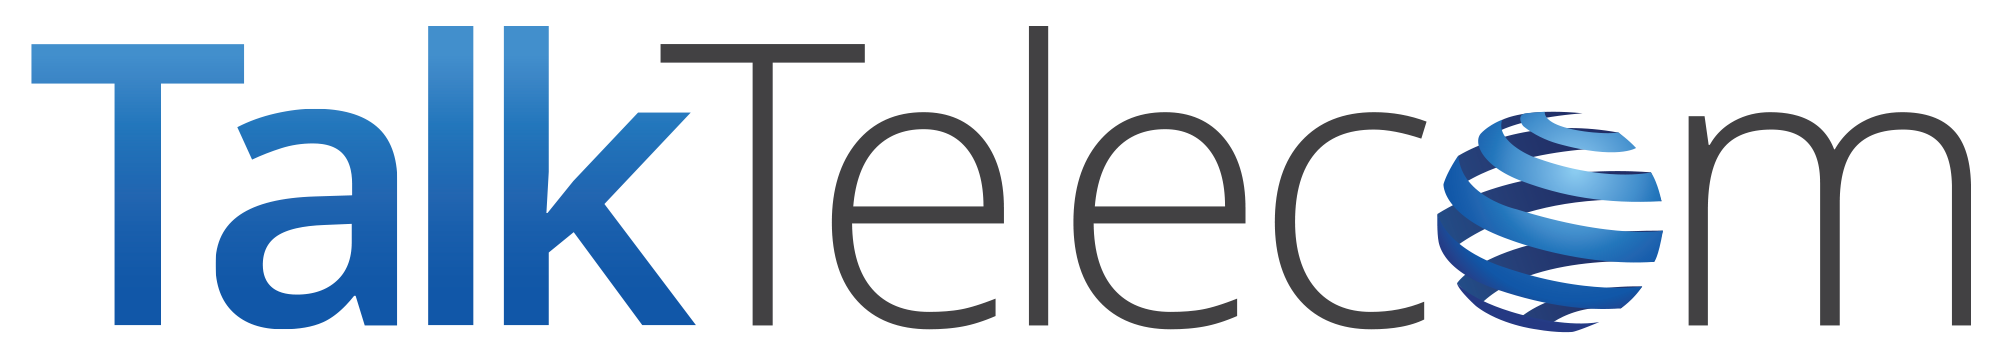 Transparent-Talk-Telecom-Logo-2